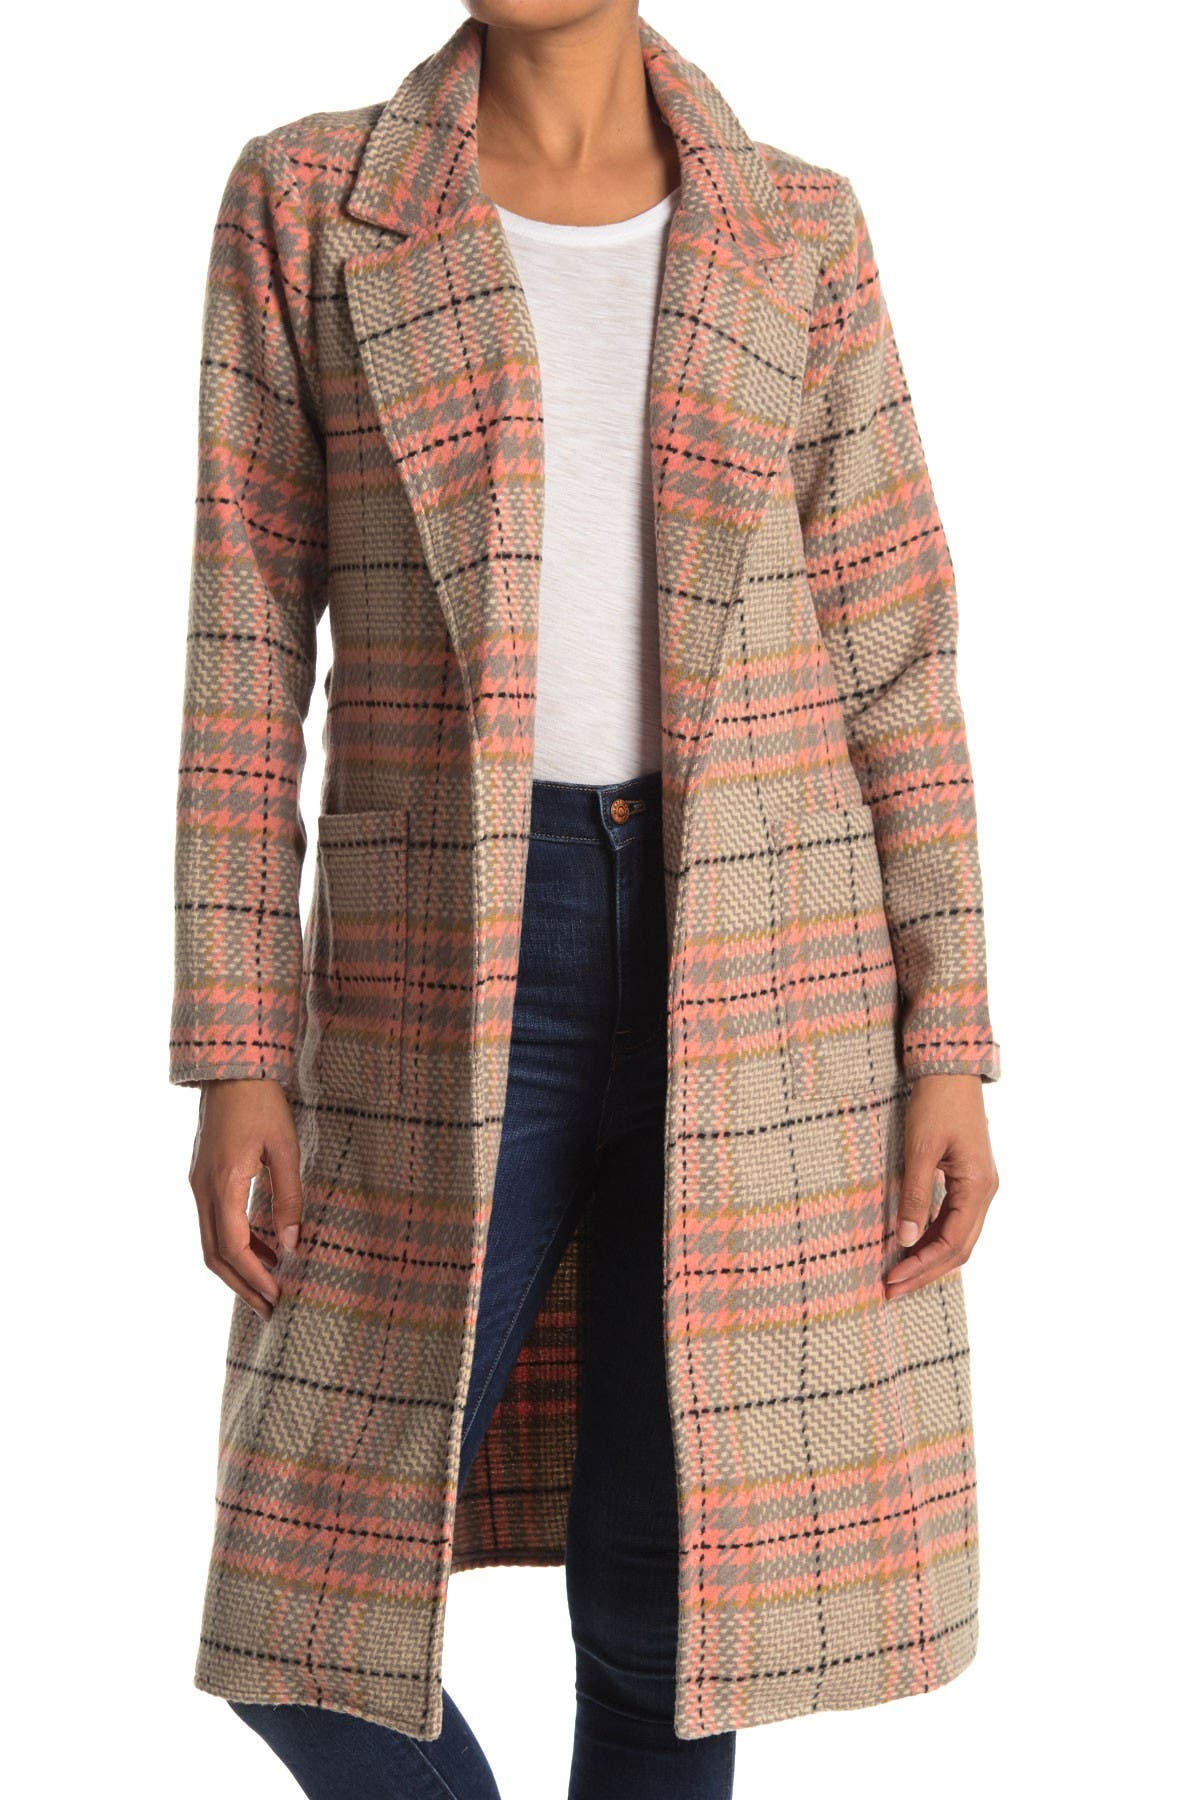 CODEXMODE Woven Plaid Duster